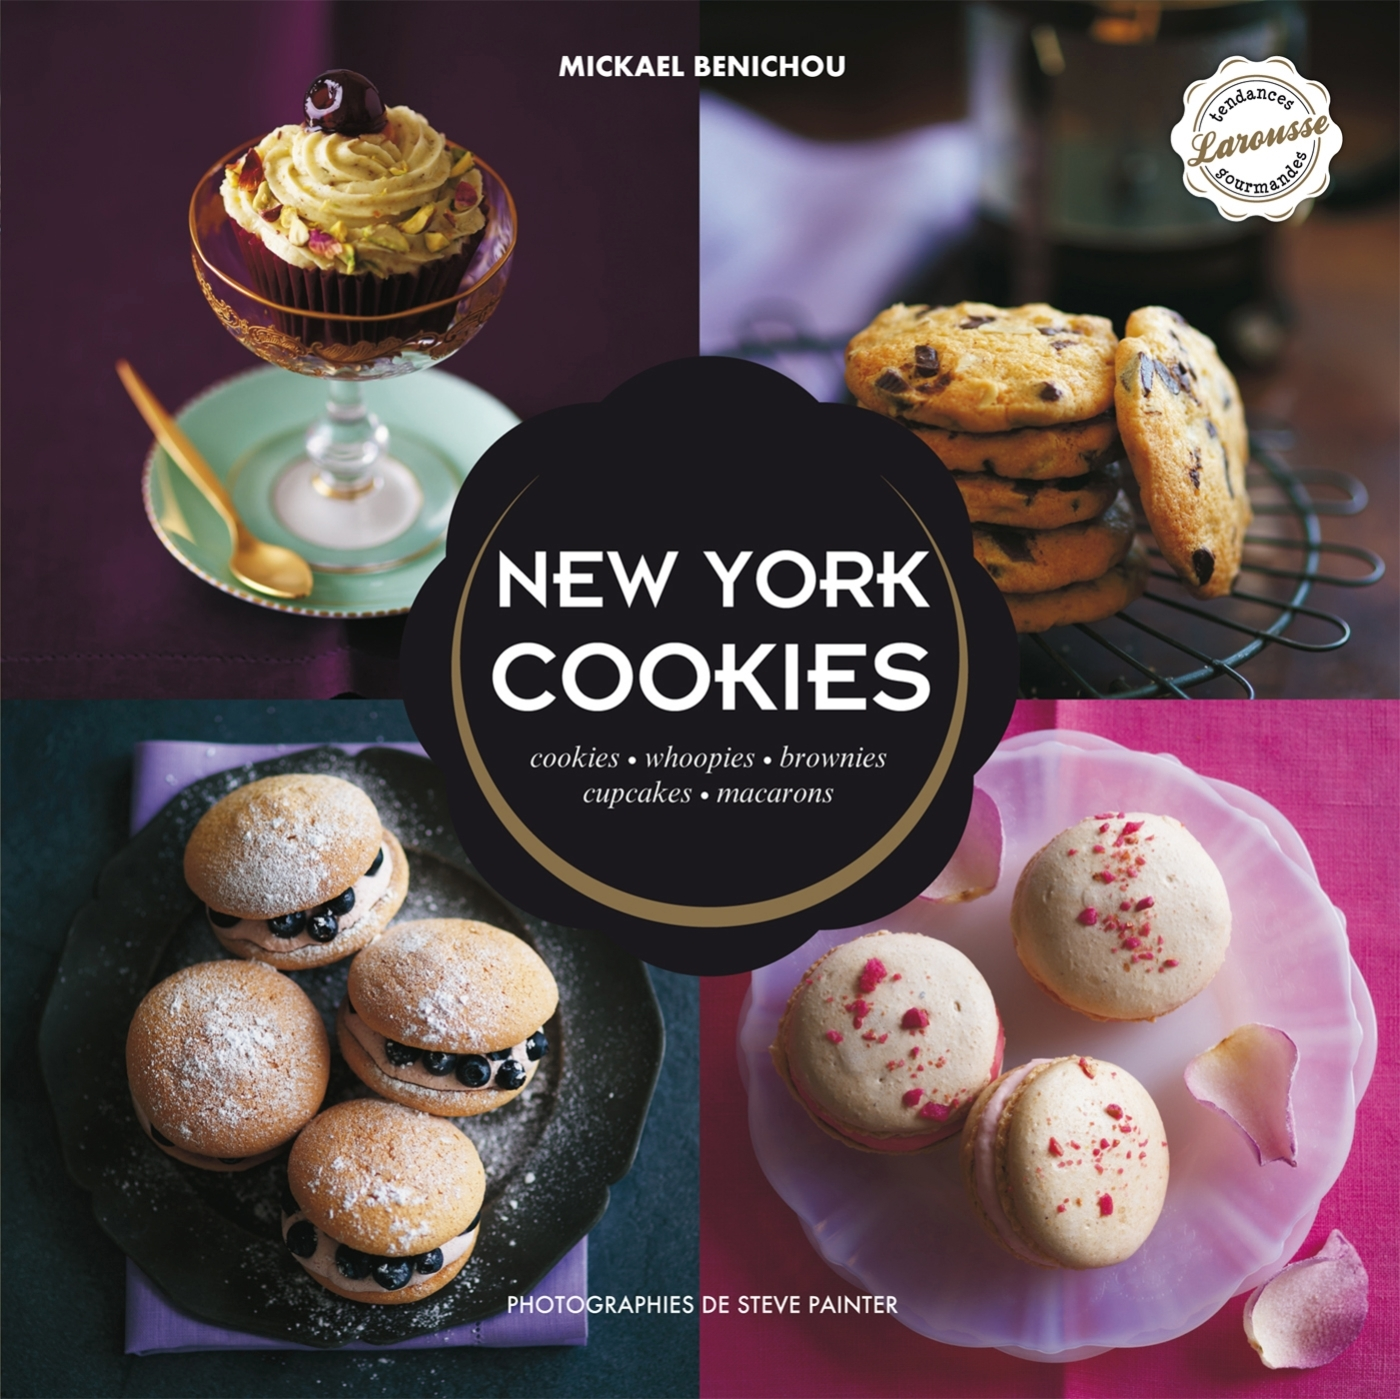 NEW YORK COOKIES